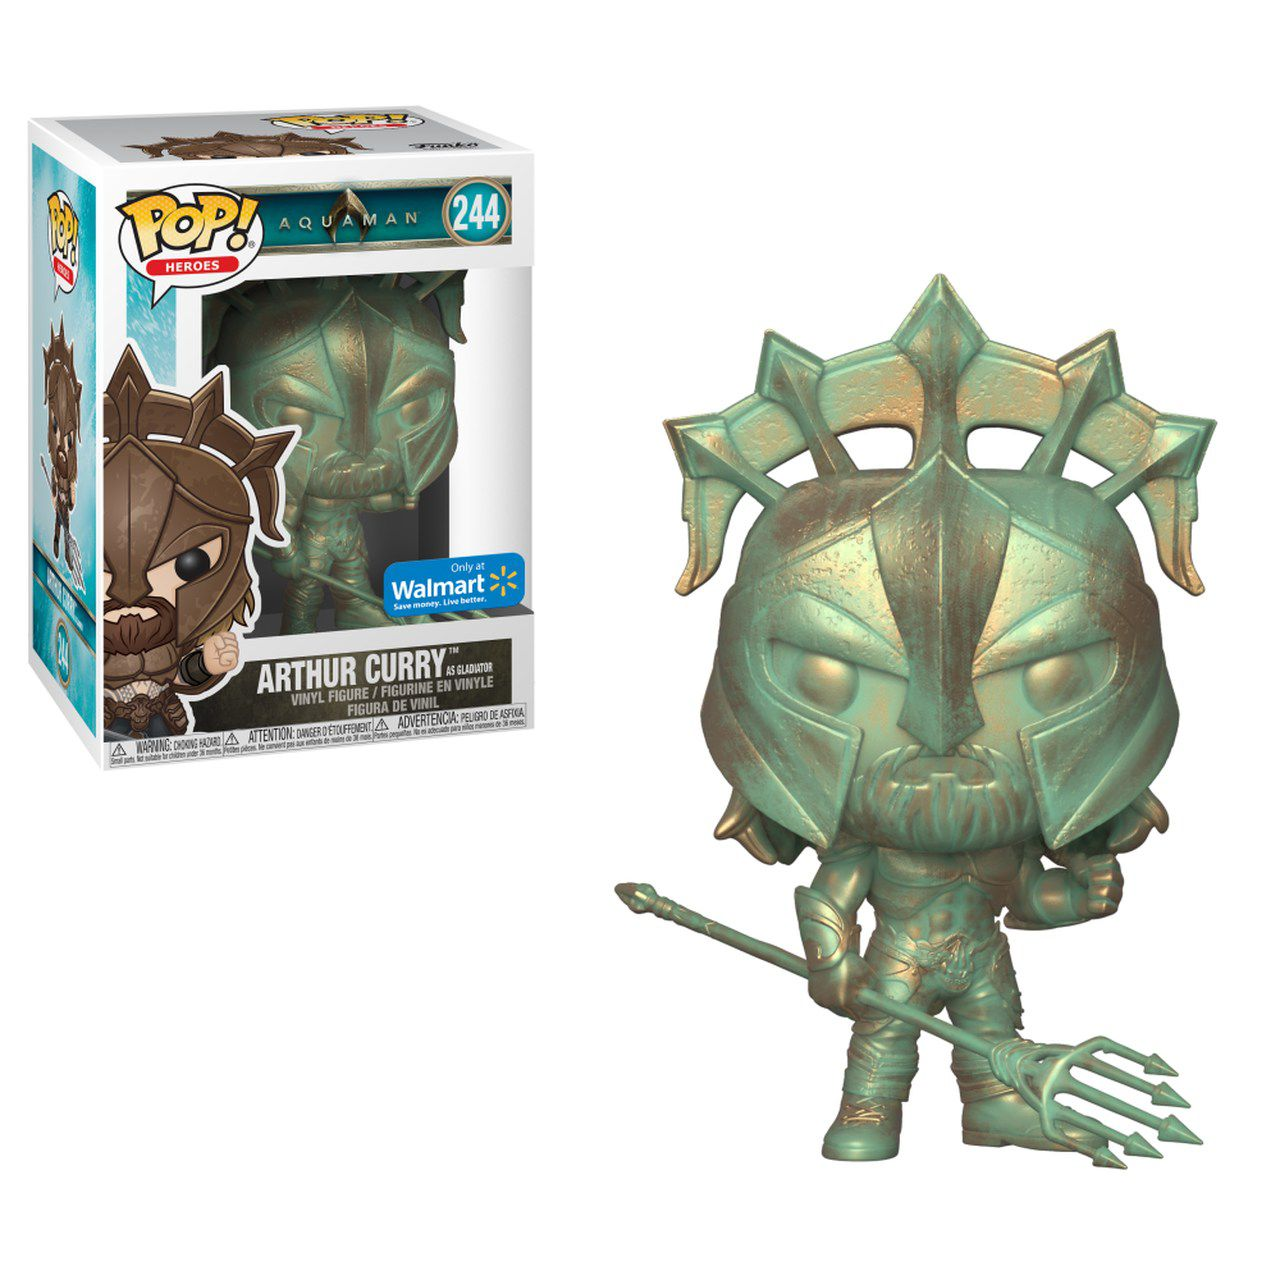 Funko Pop! Arthur Curry Gladiador (Gladiator) Patina: Aquaman (Exclusivo) #244 - Funko